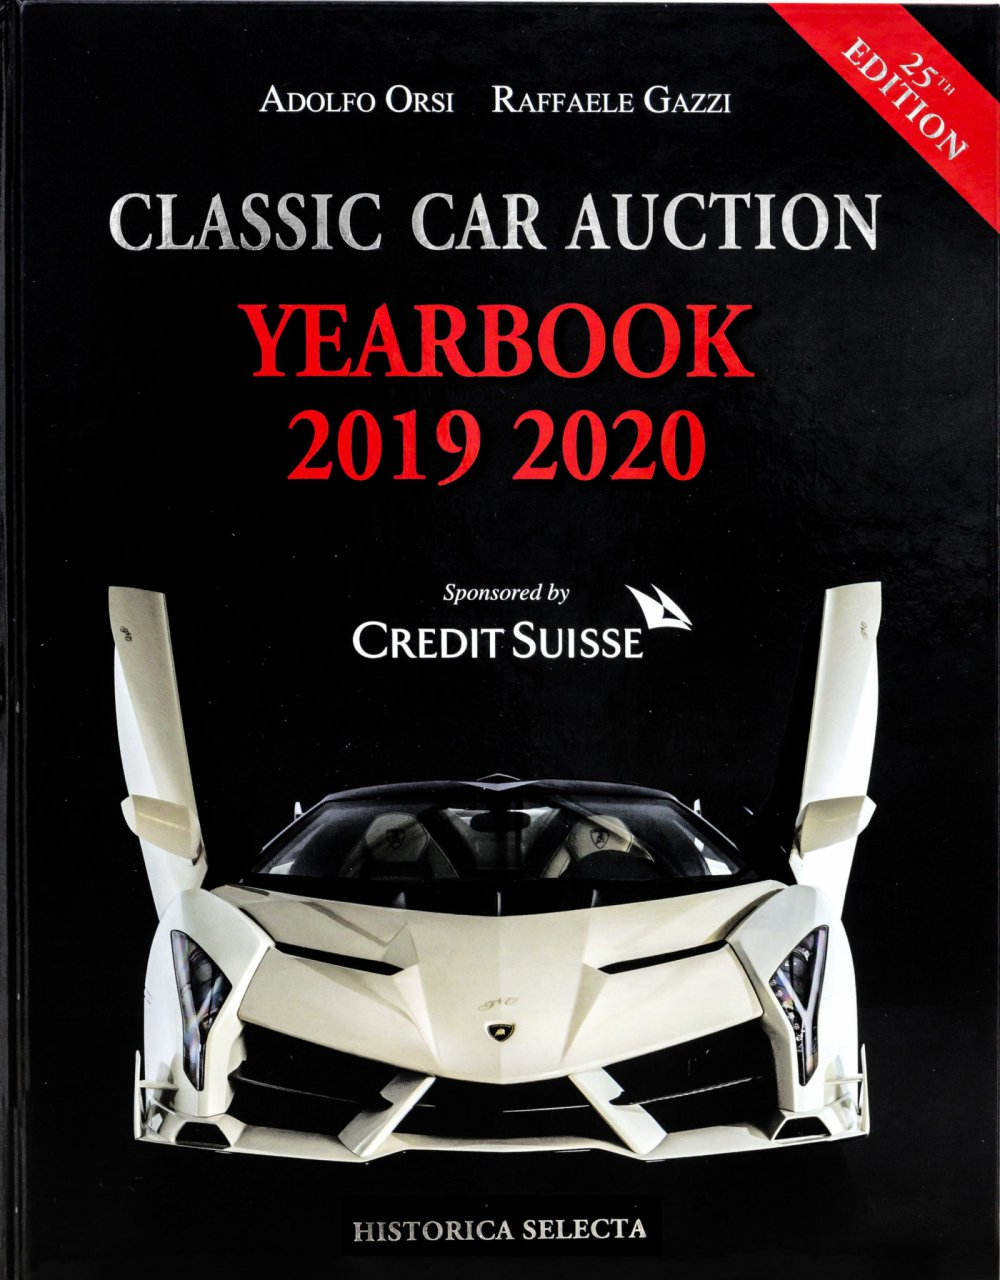 Yearbook, Classic Car Auction Yearbook: Read it and weep, ClassicCars.com Journal